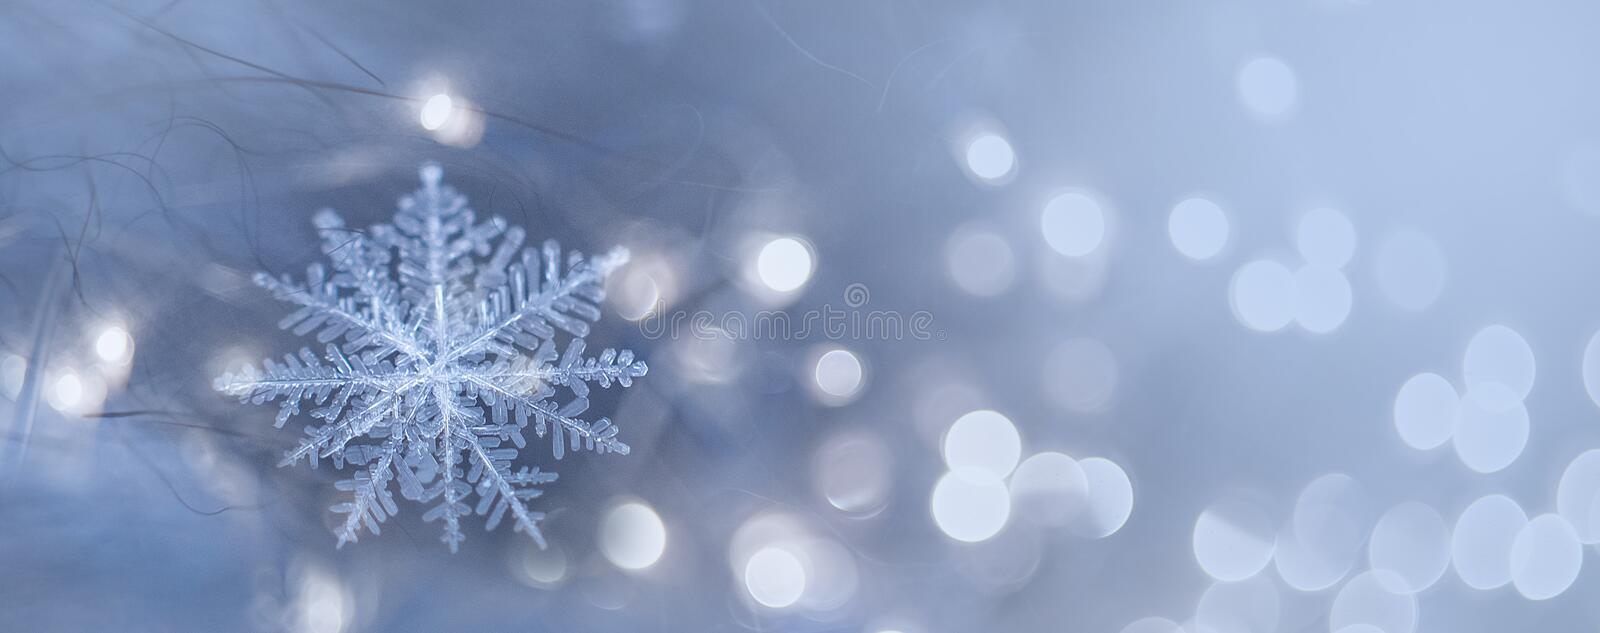 natural snowflakes on snow photo real snowflakes. Winter snow background. Snowflake Closeup. Macro photo. Copy space stock images